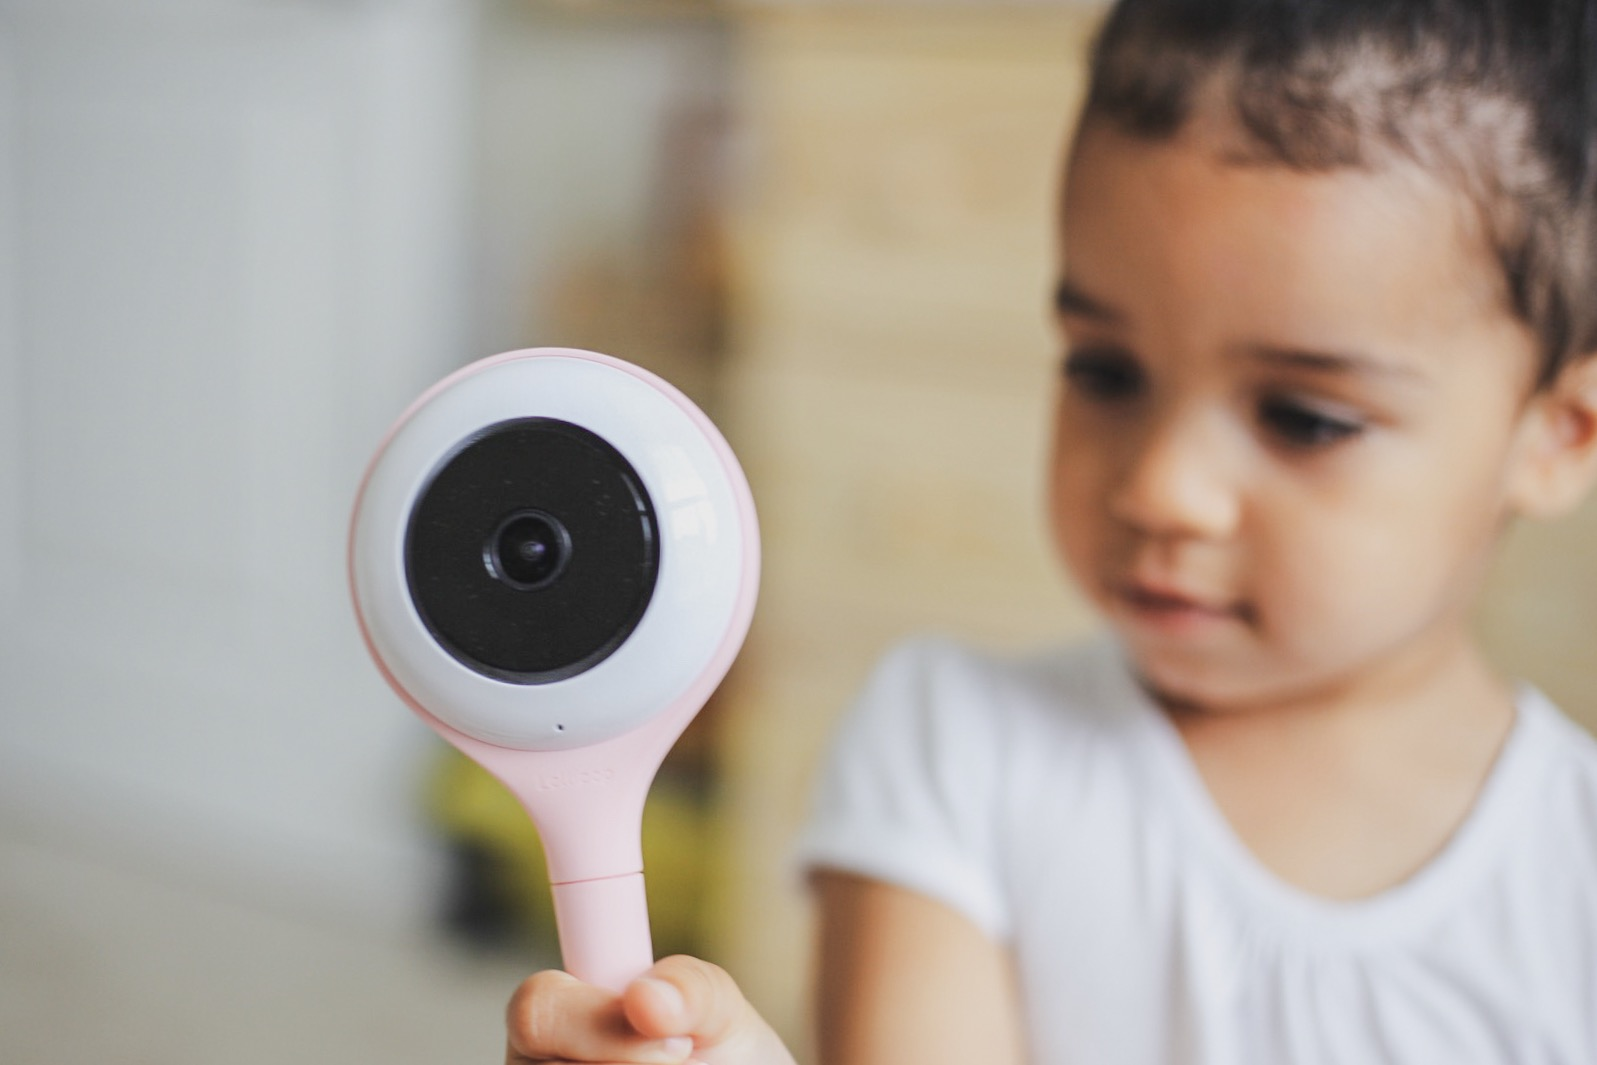 lollipop baby camera, best baby cameras, toddler room ideas, toddler rooms, baby camera review, toddler room decor